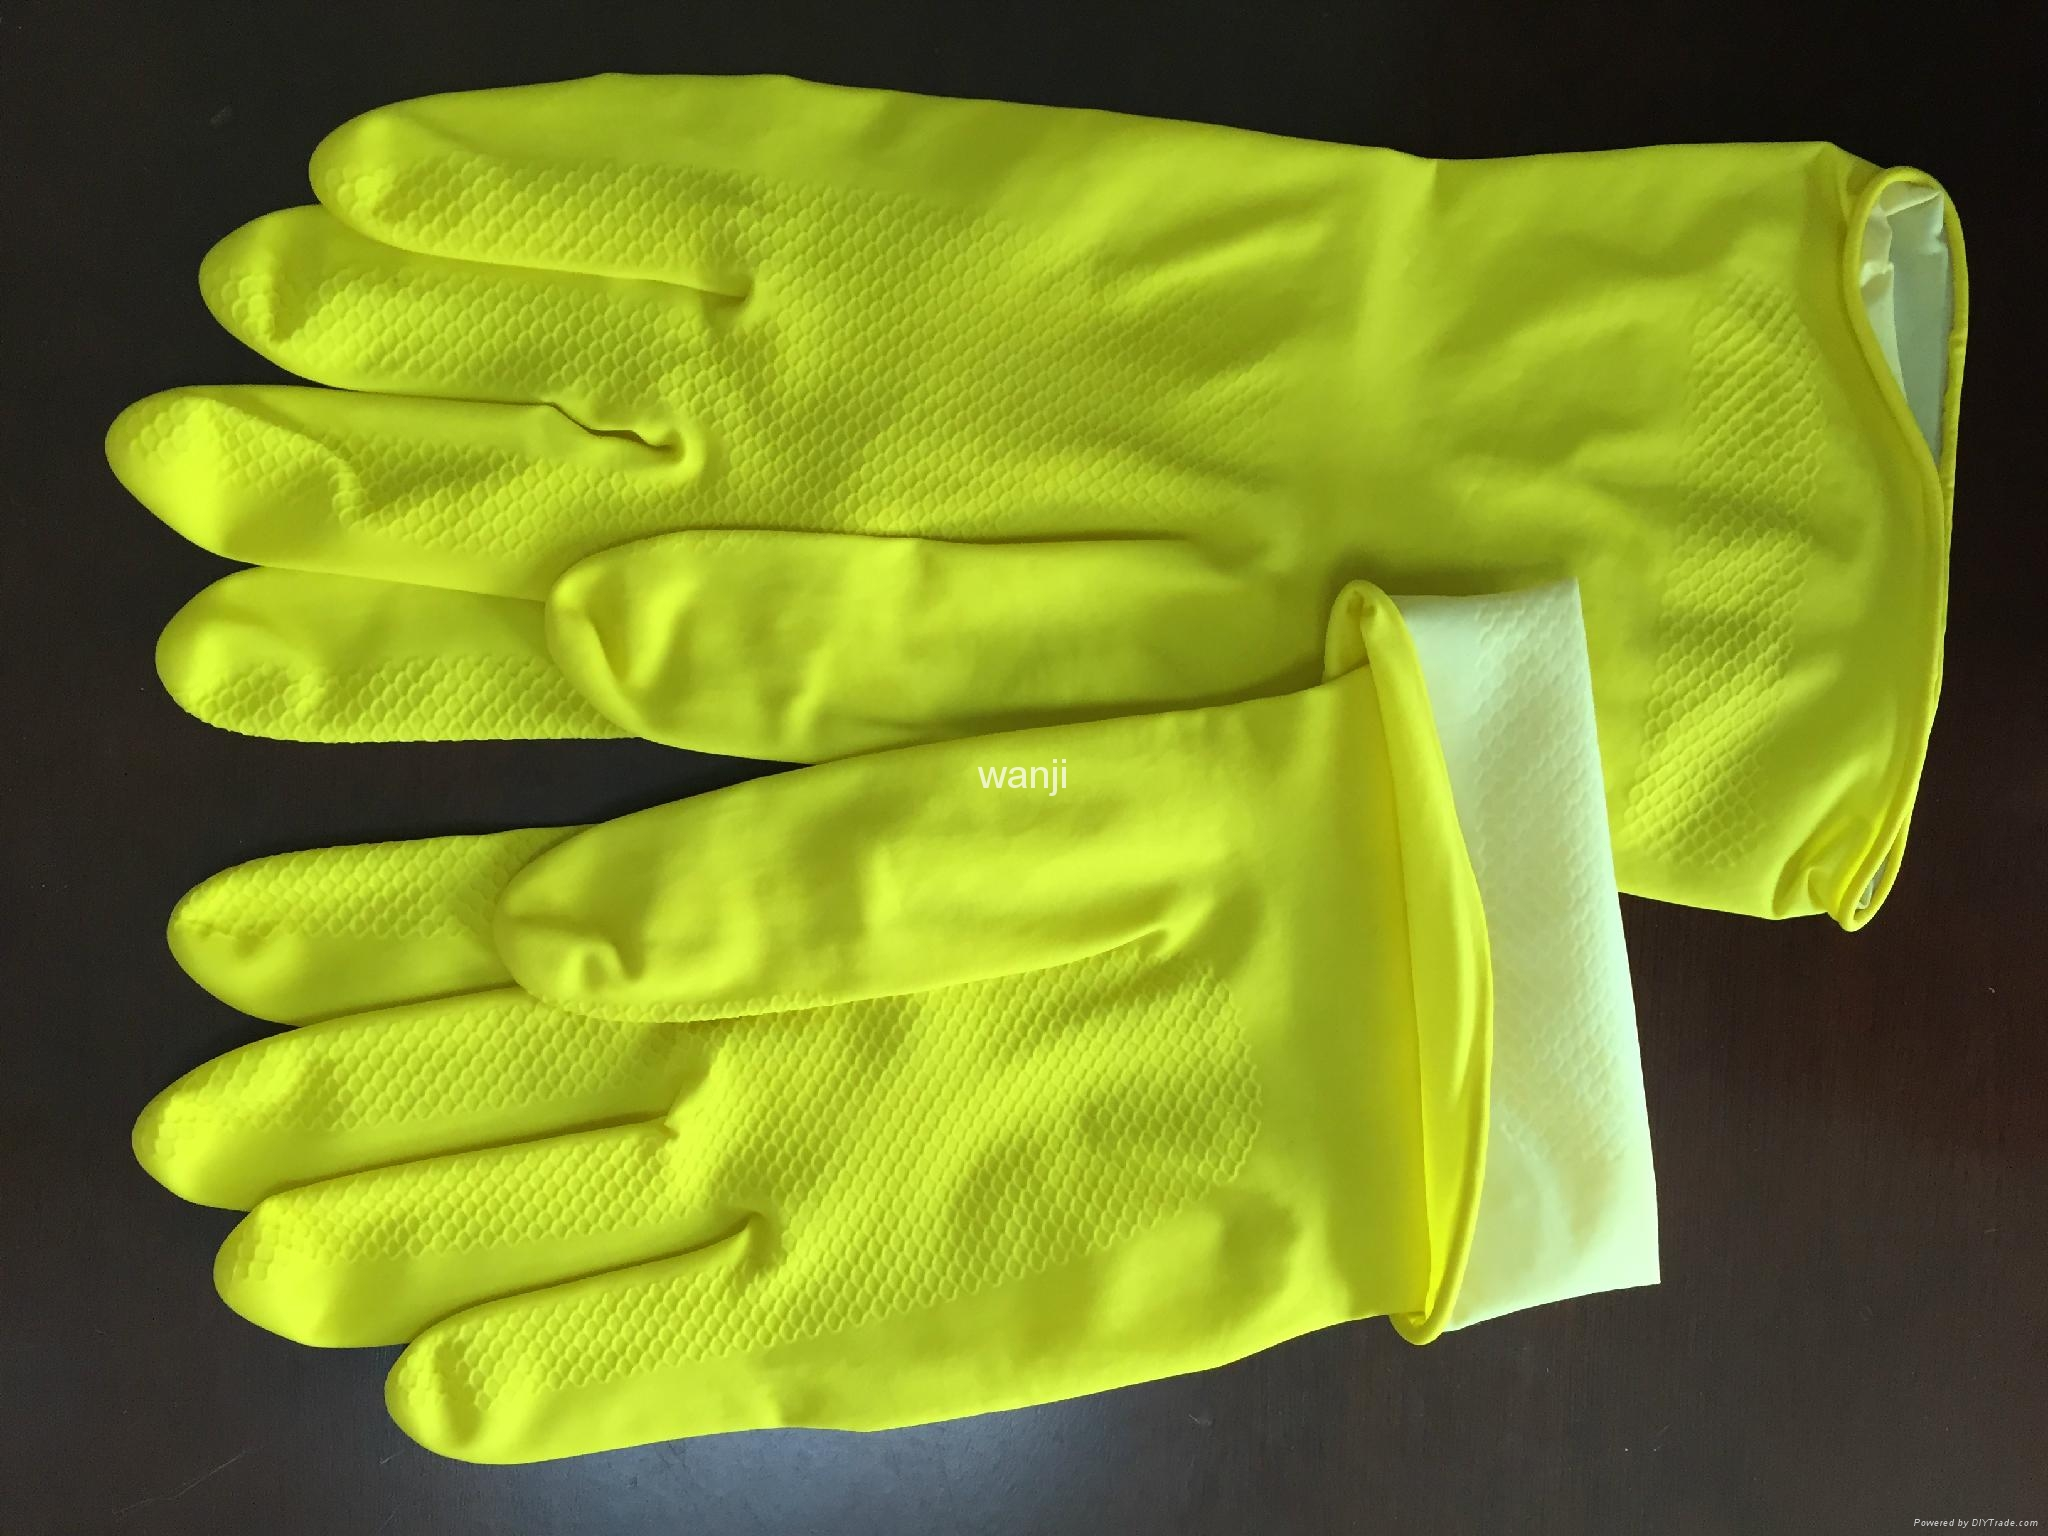 40G household latex gloves yellow colour 2